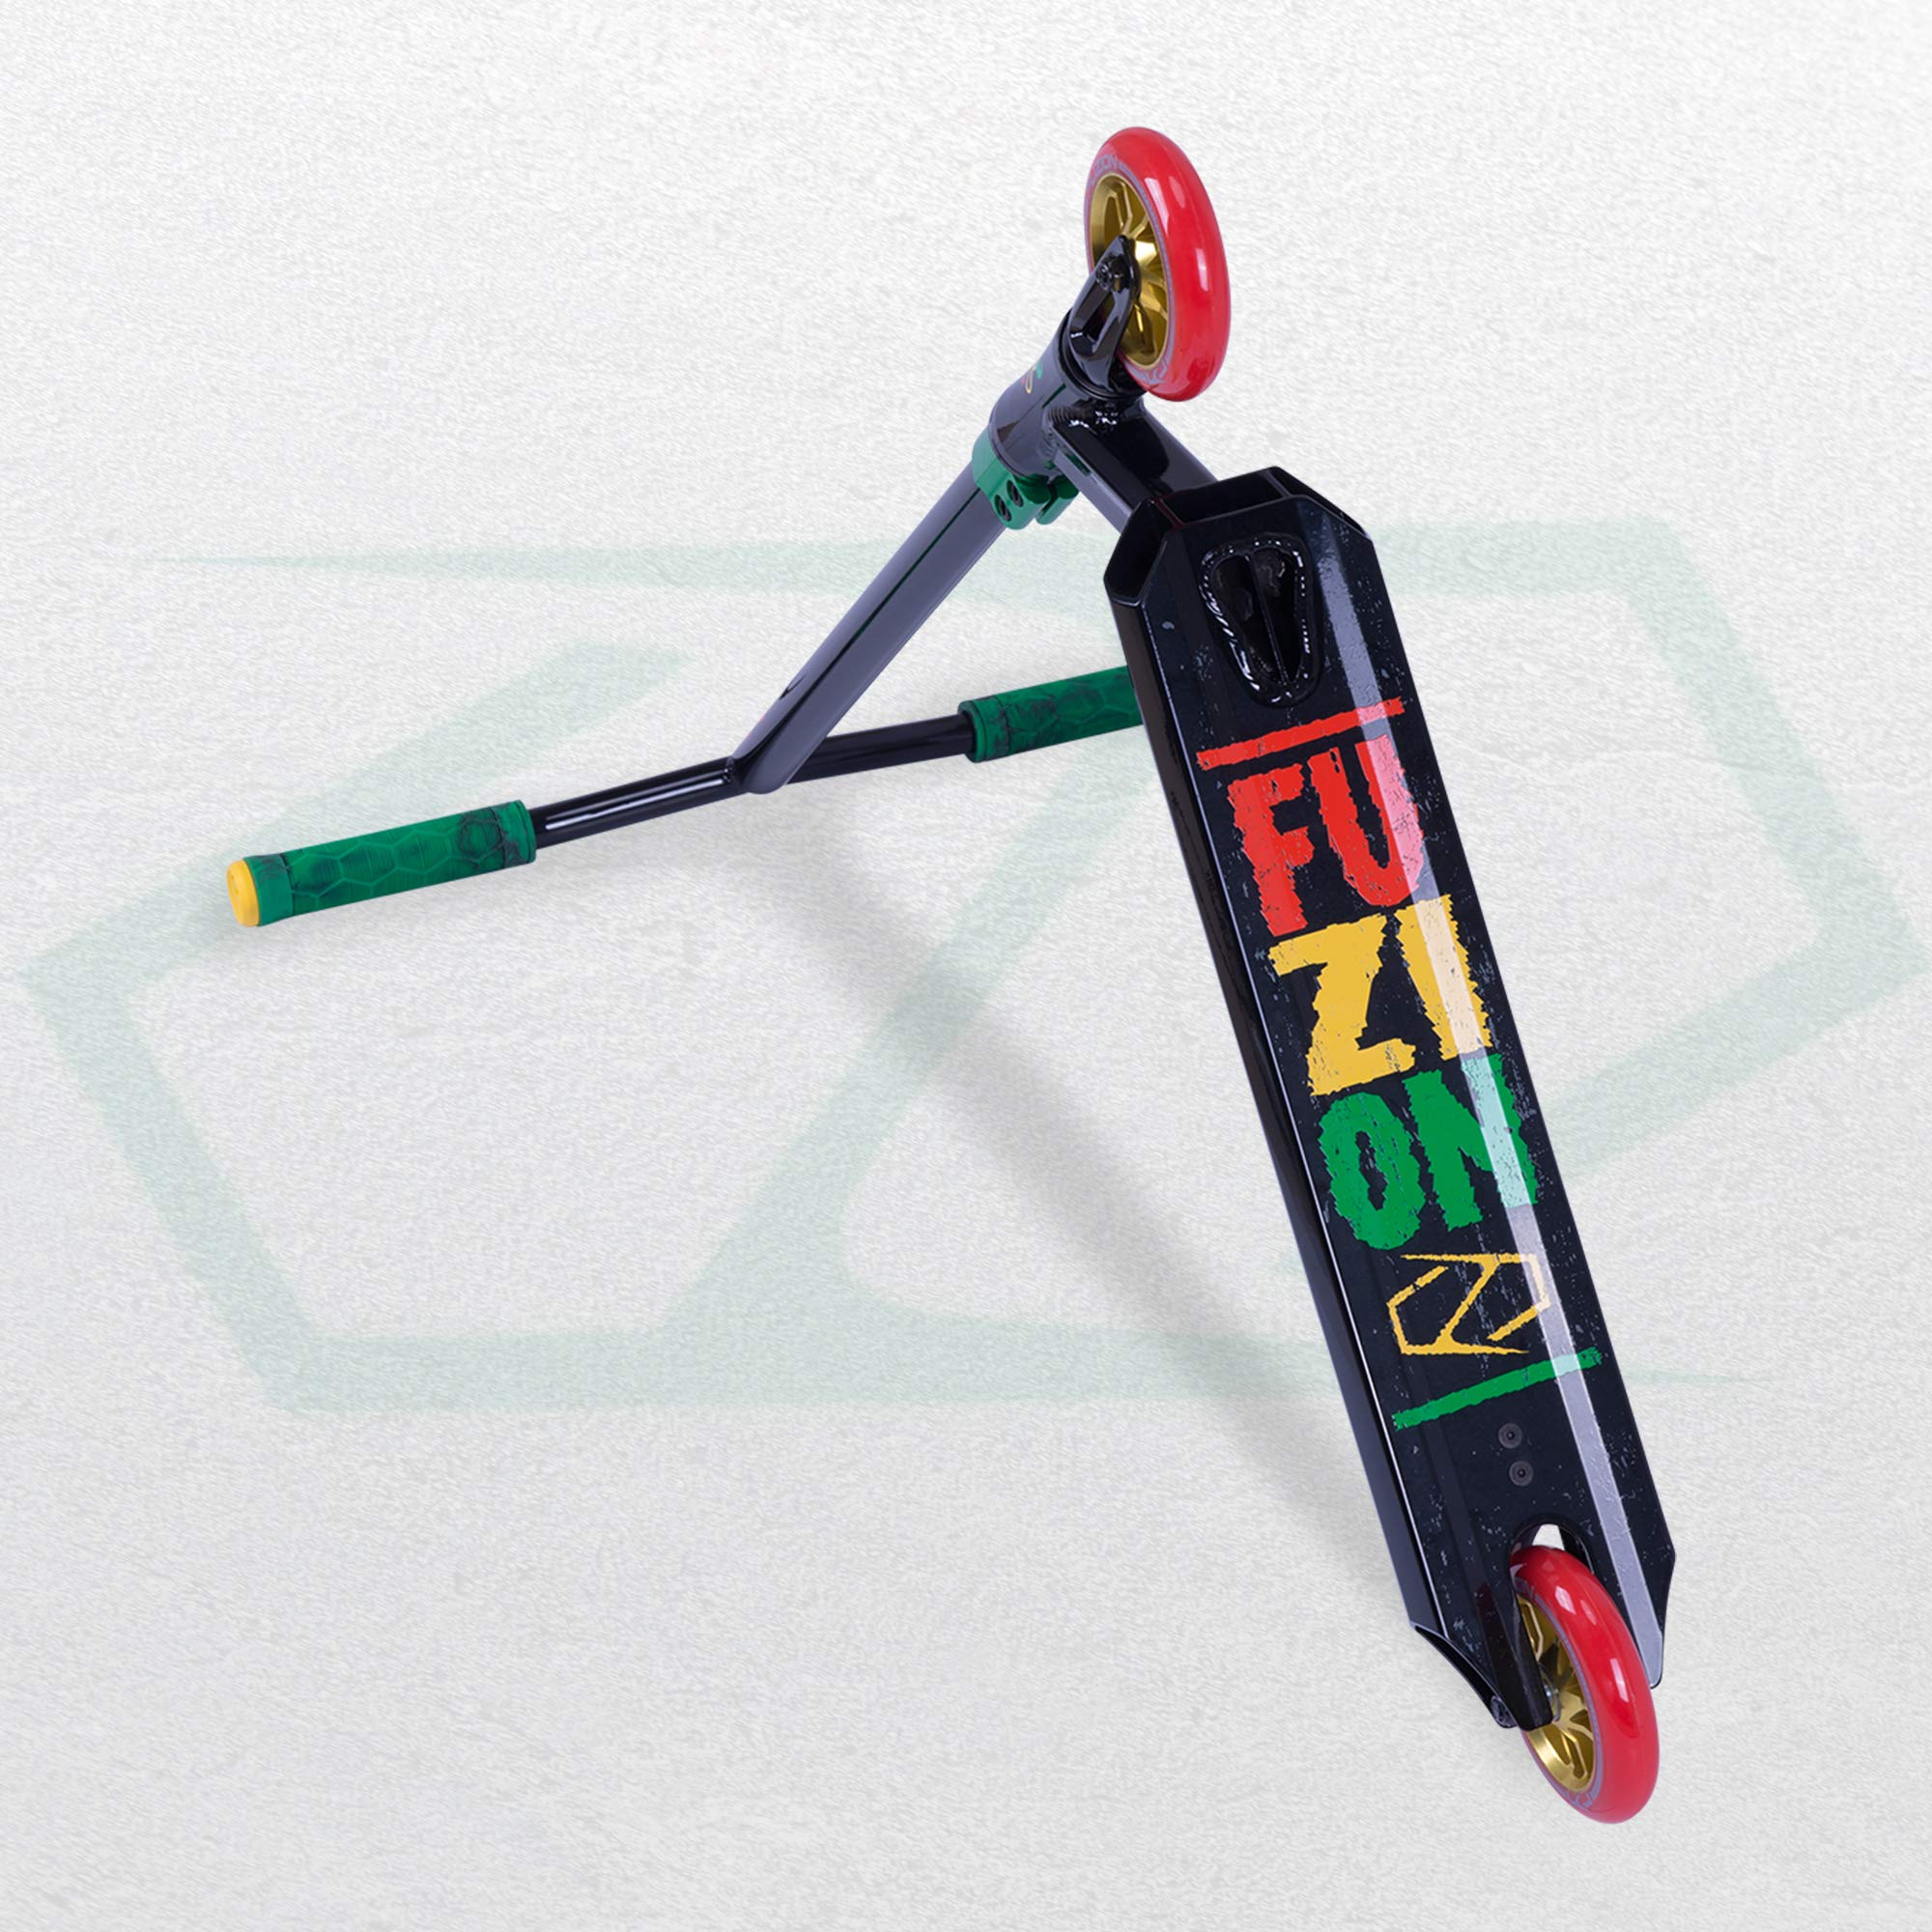 Fuzion Z250 Pro Scooters - Trick Scooter - Intermediate and Beginner Stunt Scooters for Kids 8 Years and Up, Teens and Adults – Durable Freestyle Kick Scooter for Boys and Girls (2019 Rasta) by Fuzion (Image #4)